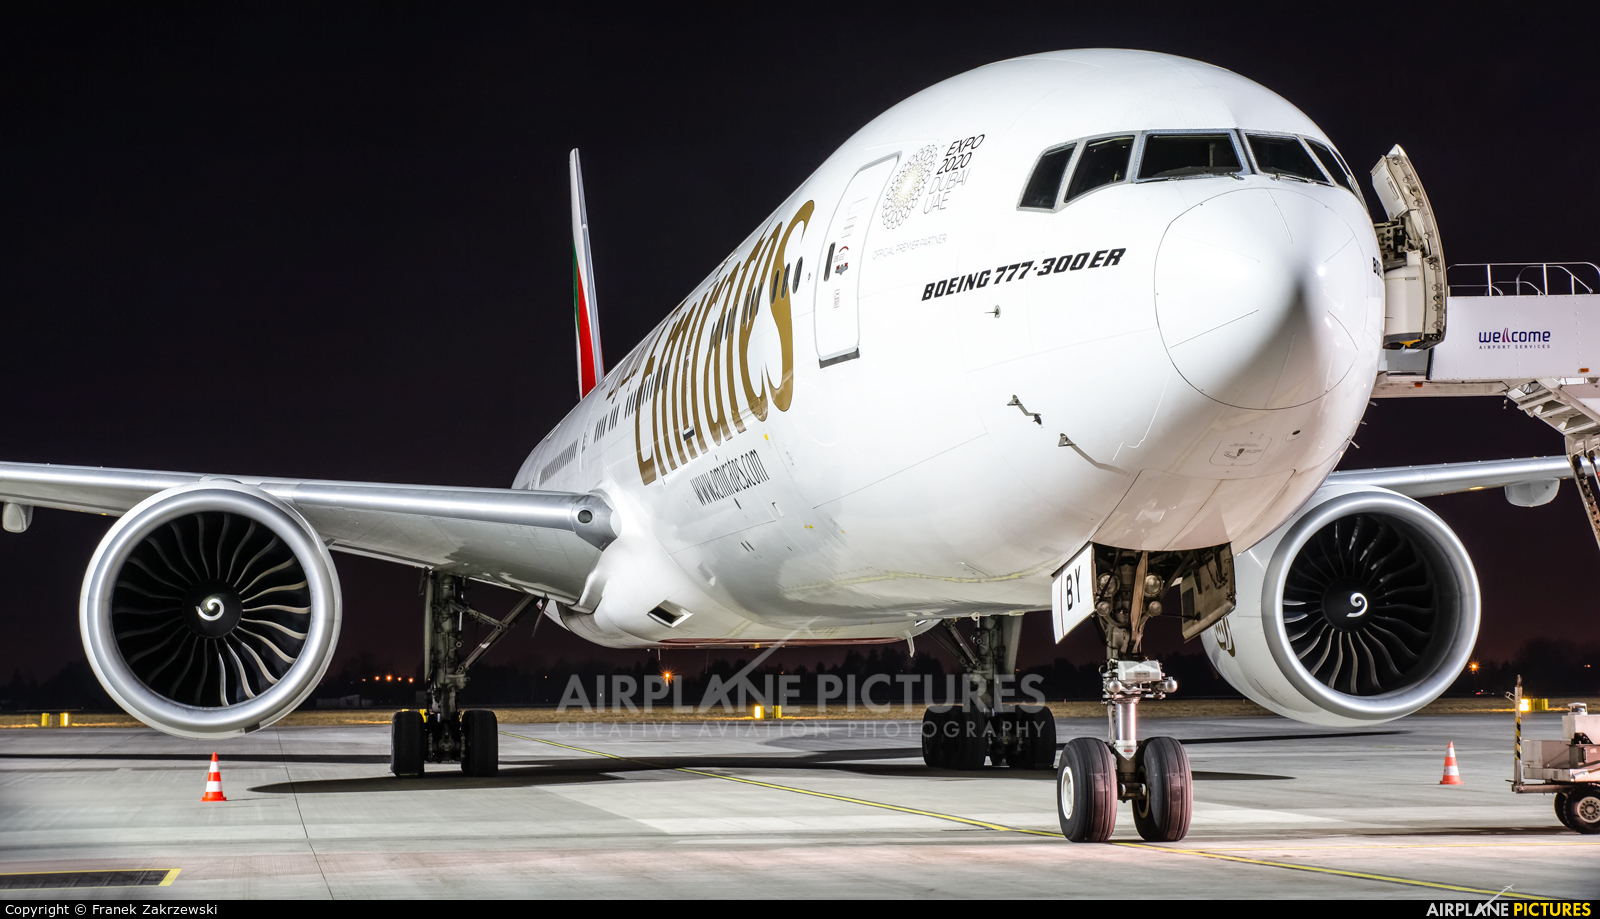 Emirates Airlines A6-EBY aircraft at Warsaw - Frederic Chopin